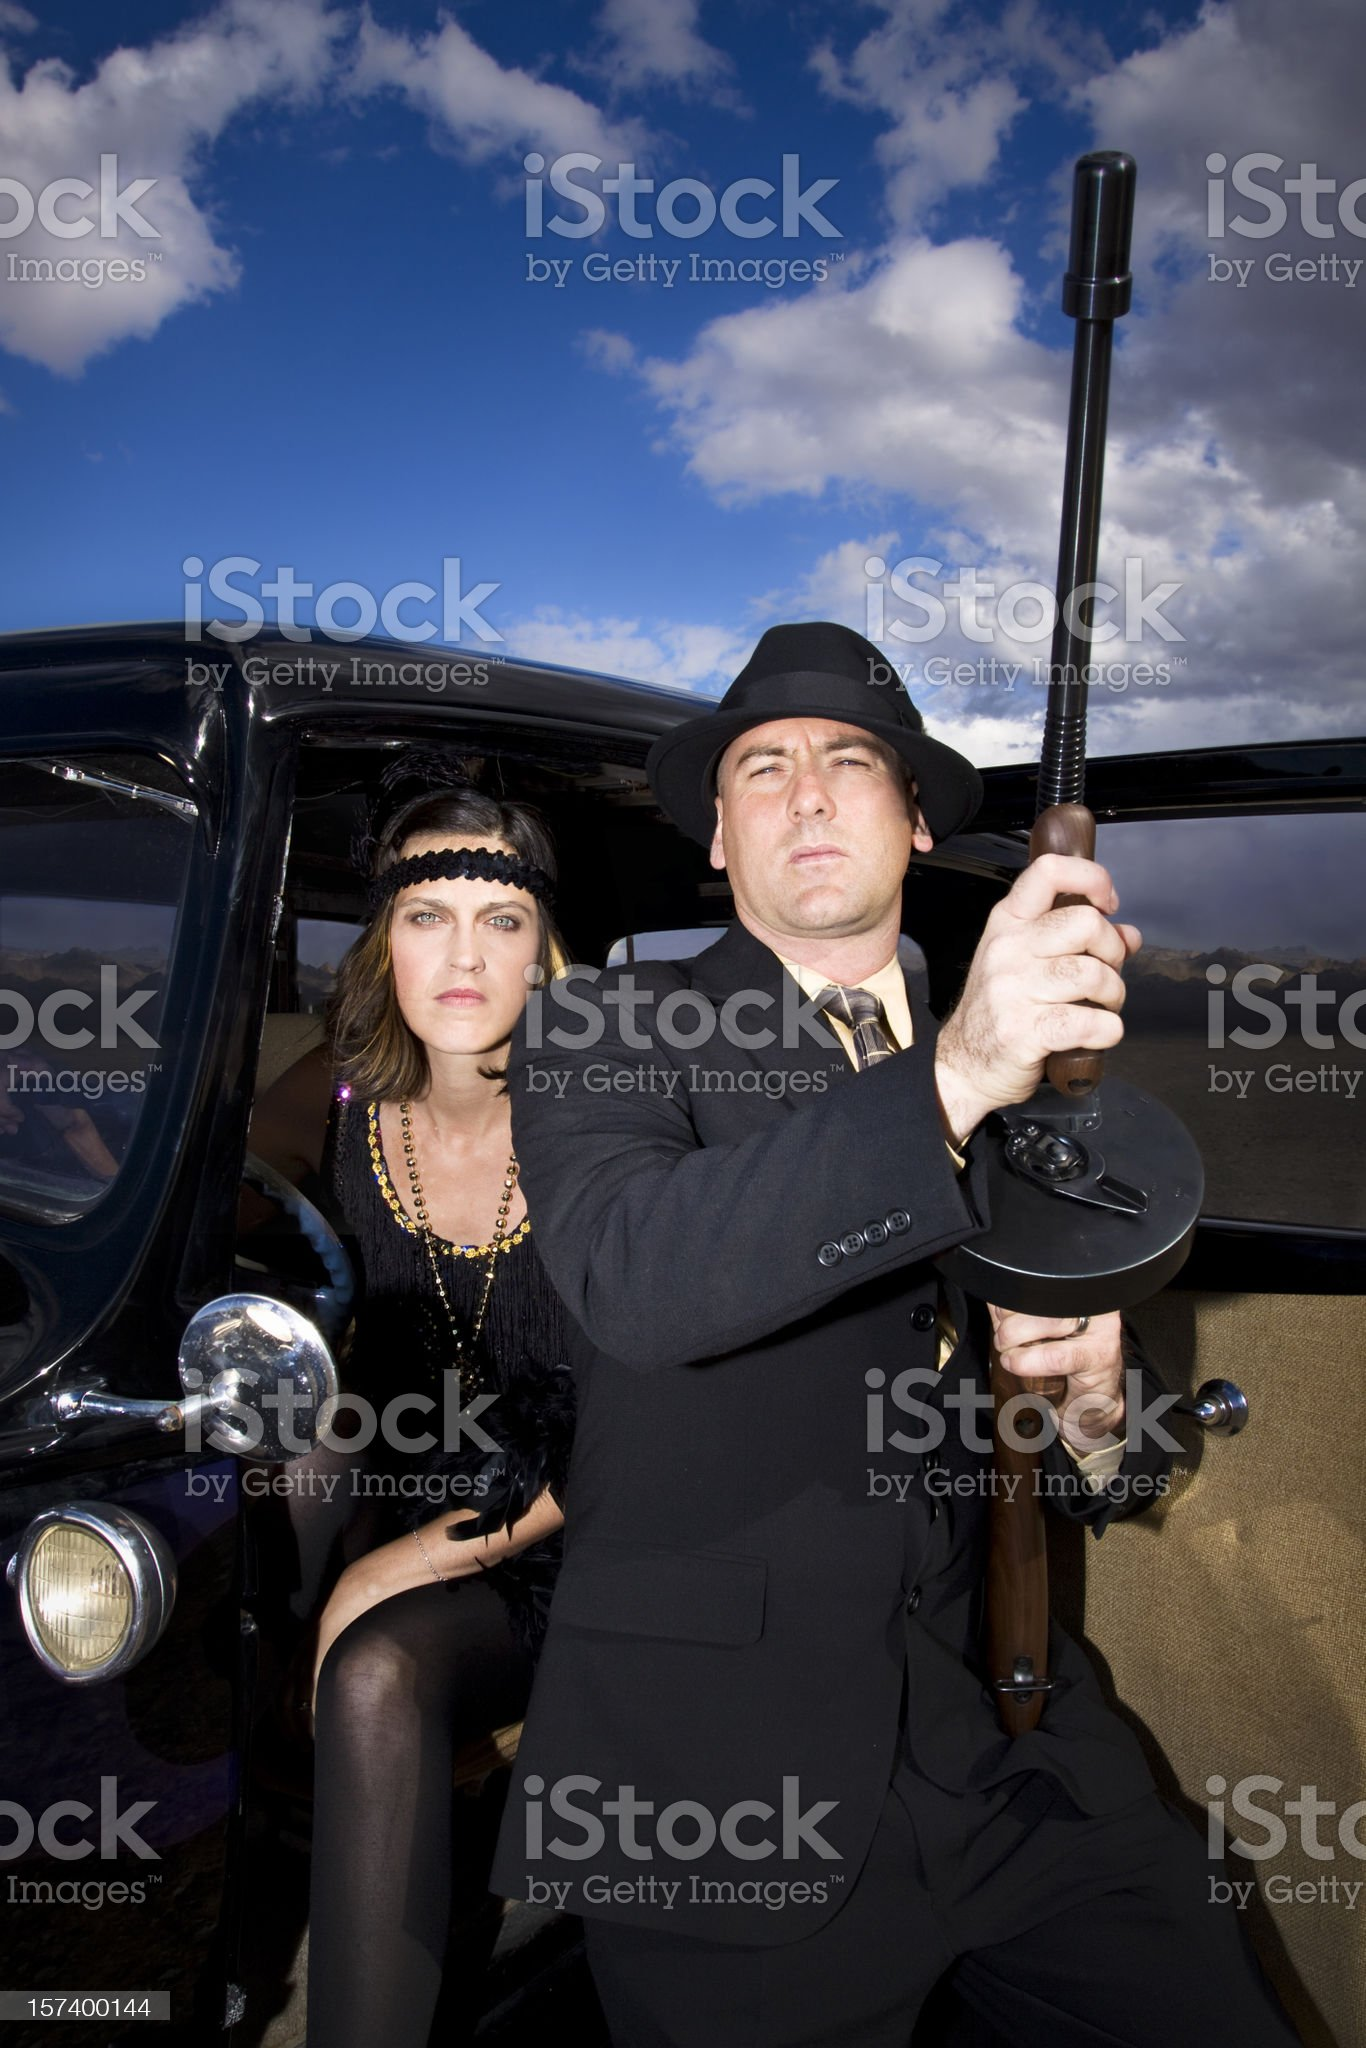 Vintage 1920's-1930's Gangsters Style Shot. royalty-free stock photo